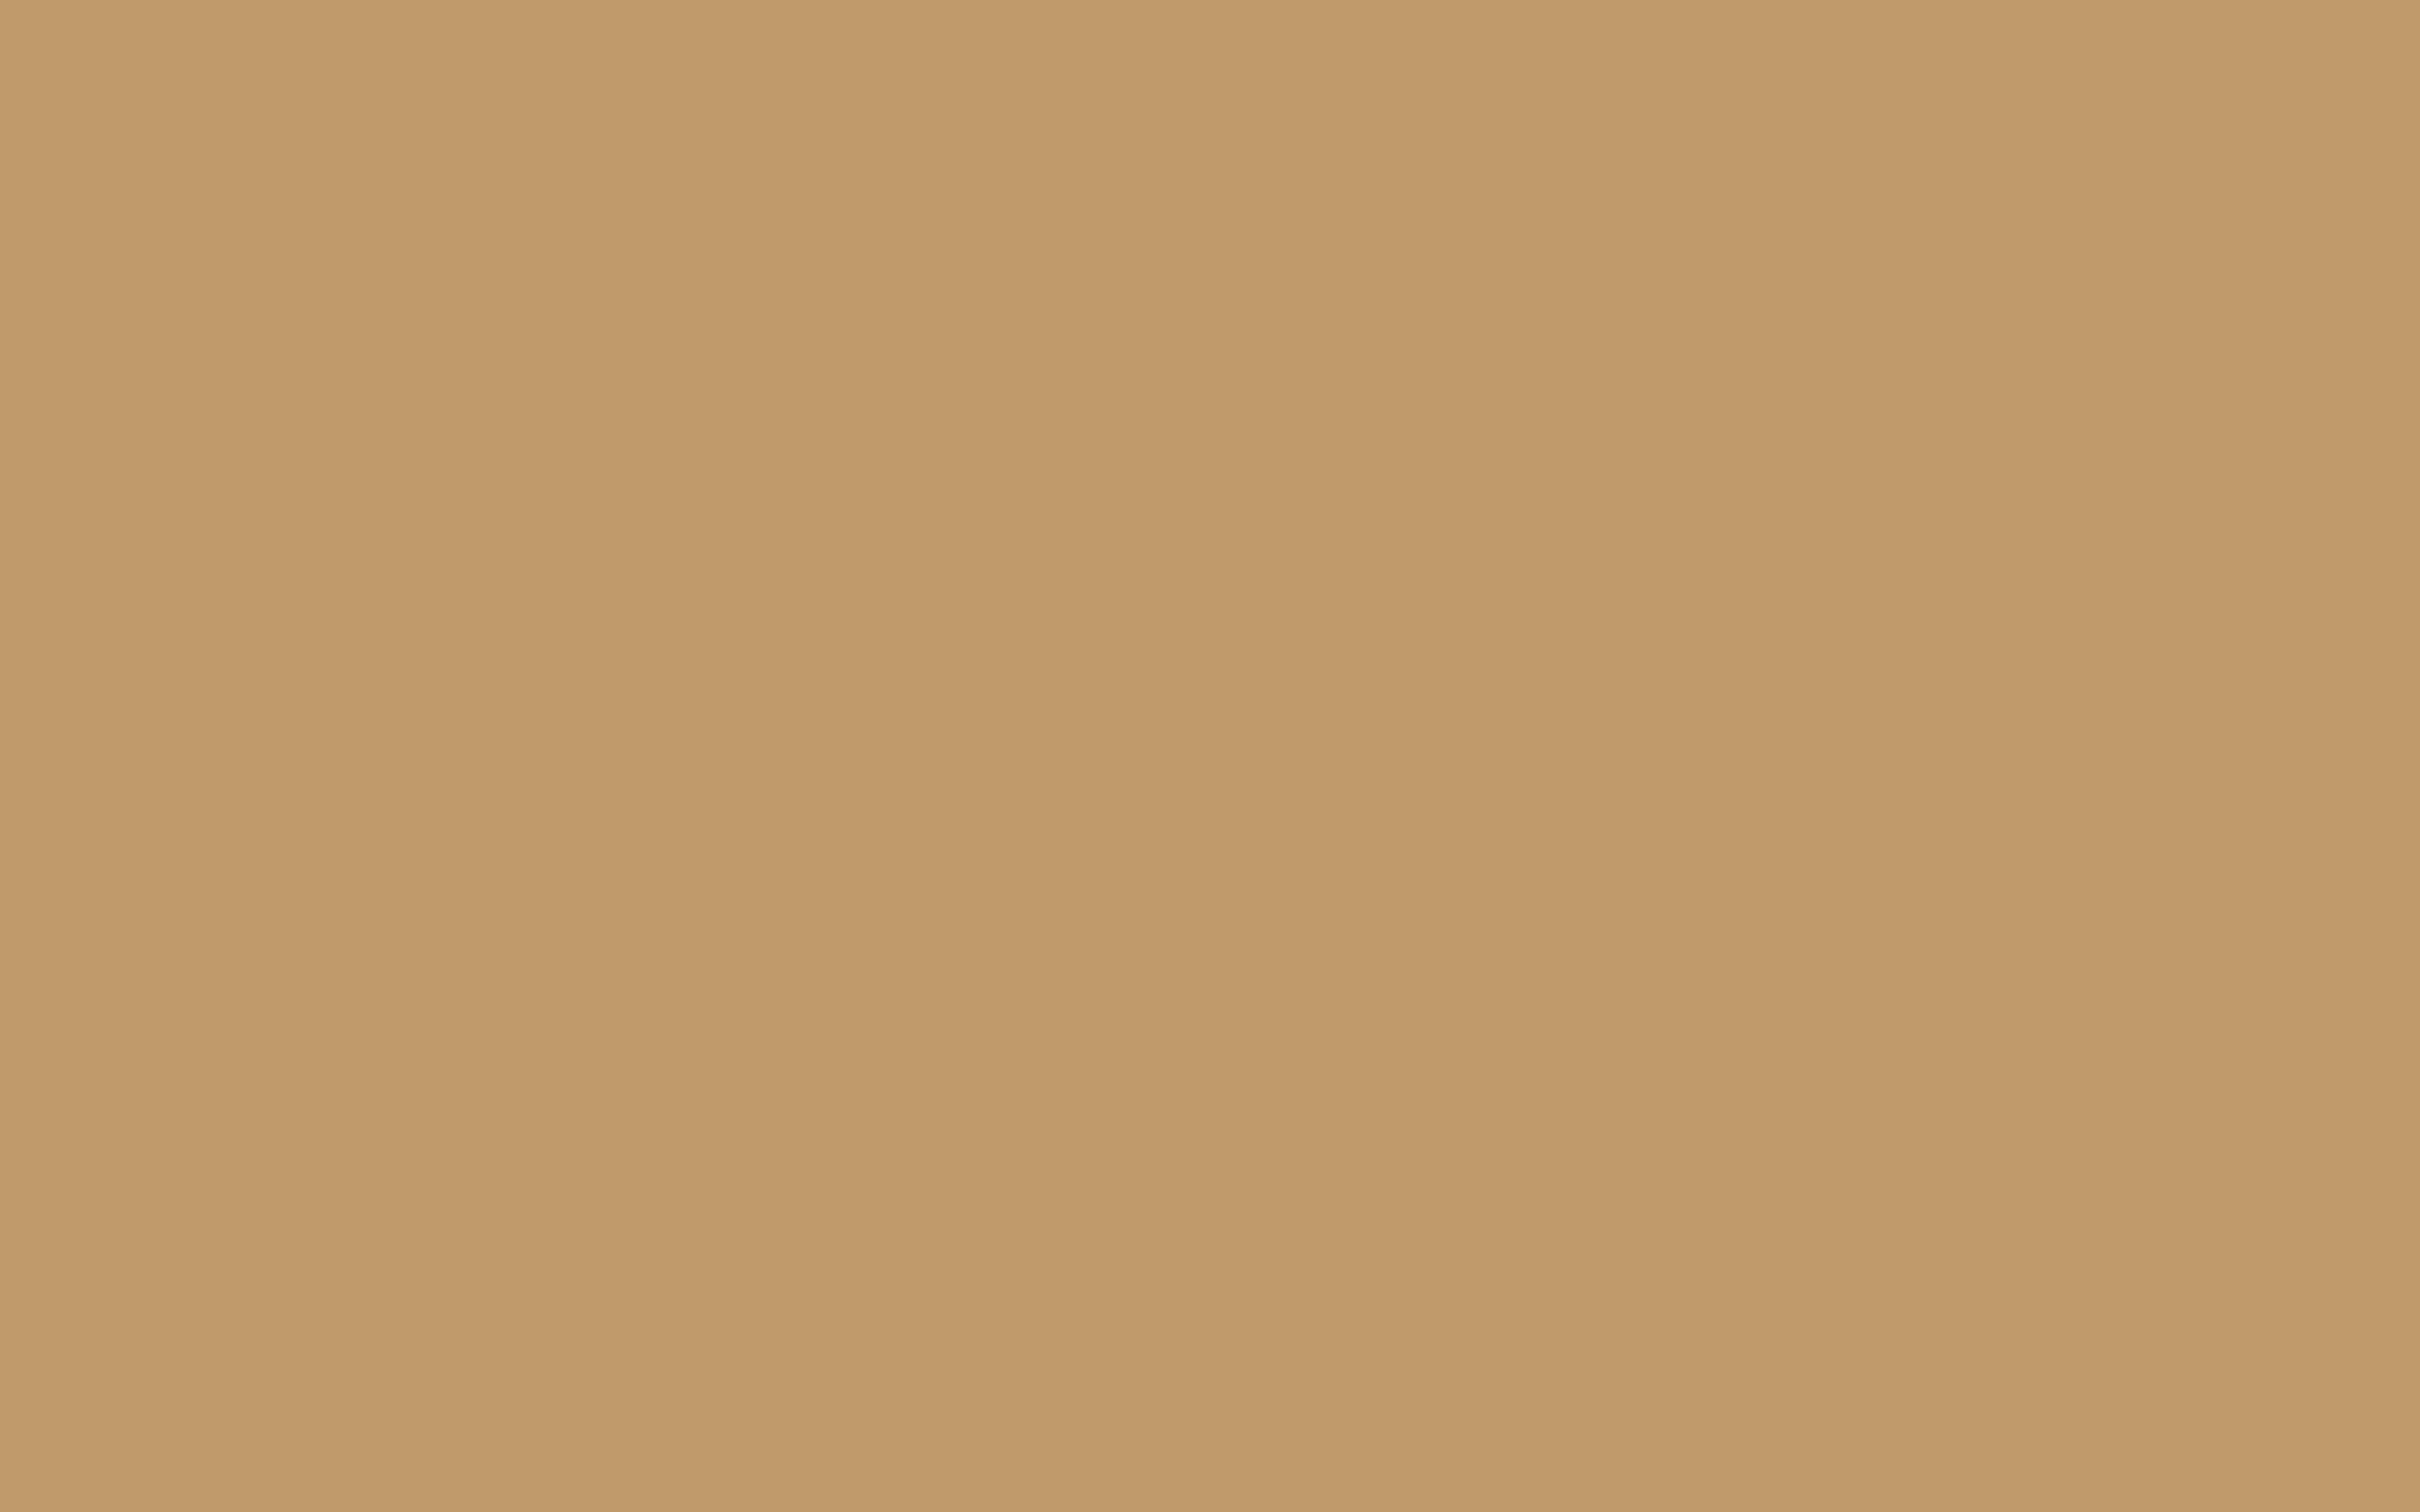 2880x1800 Wood Brown Solid Color Background 2880x1800